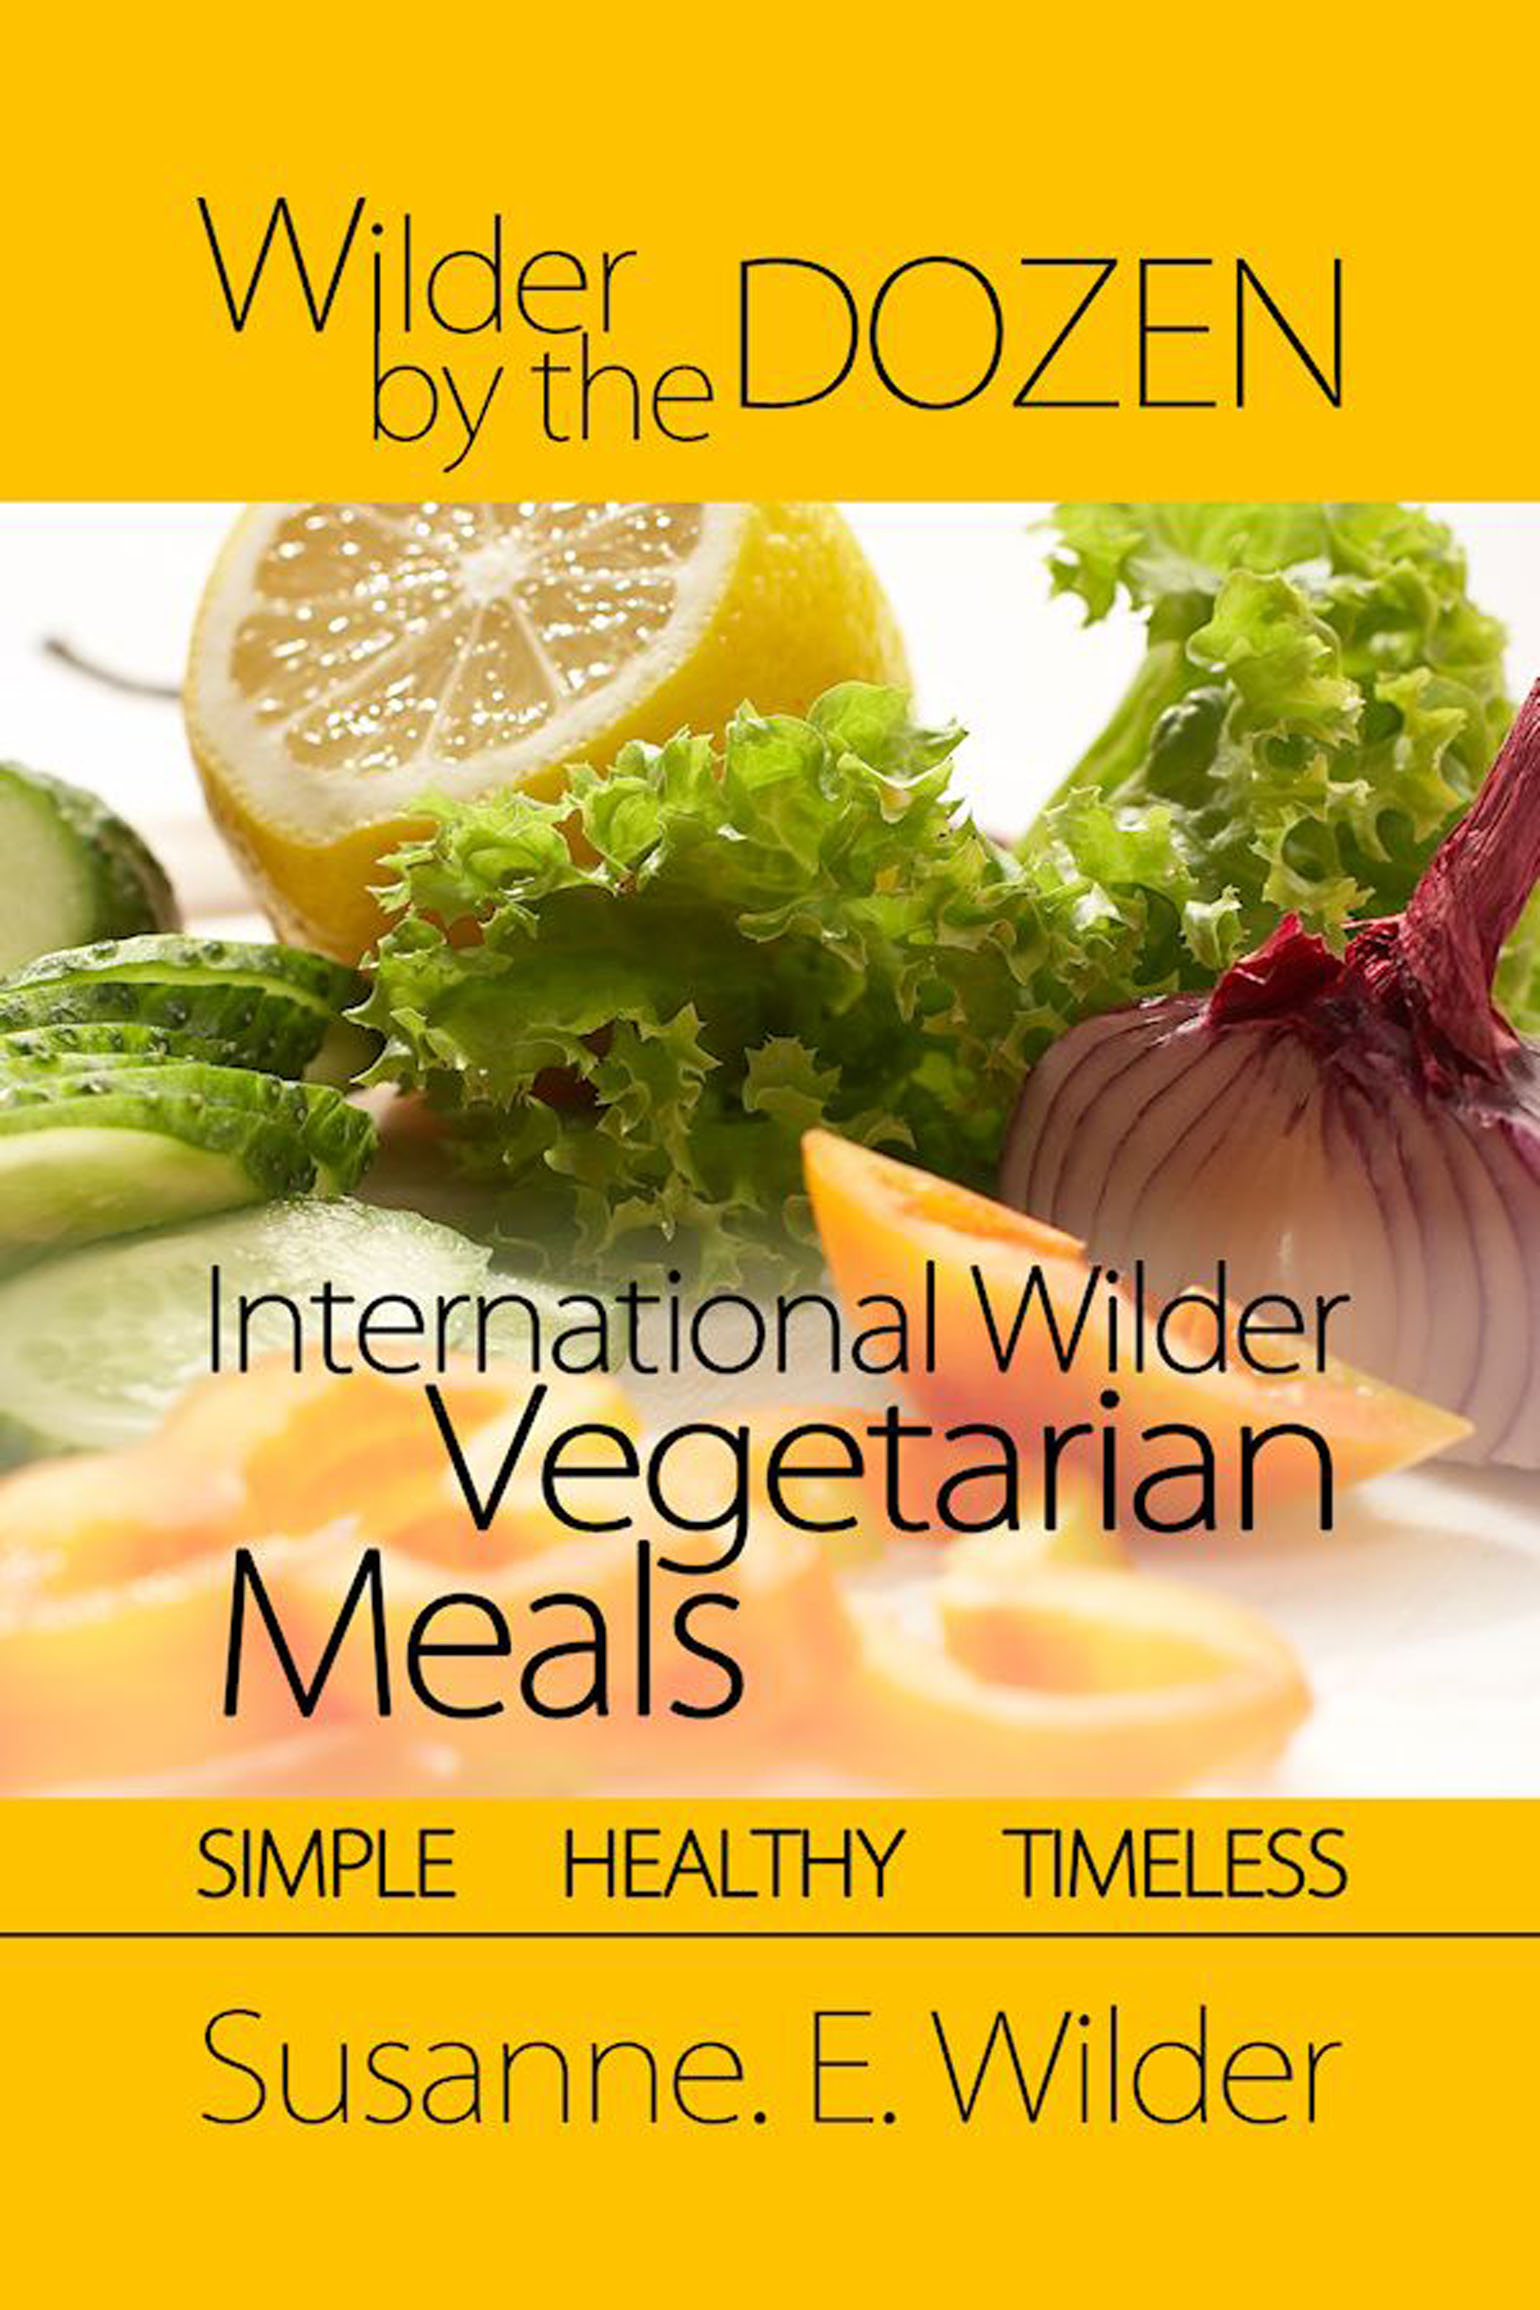 International Wilder Vegetarian Meals